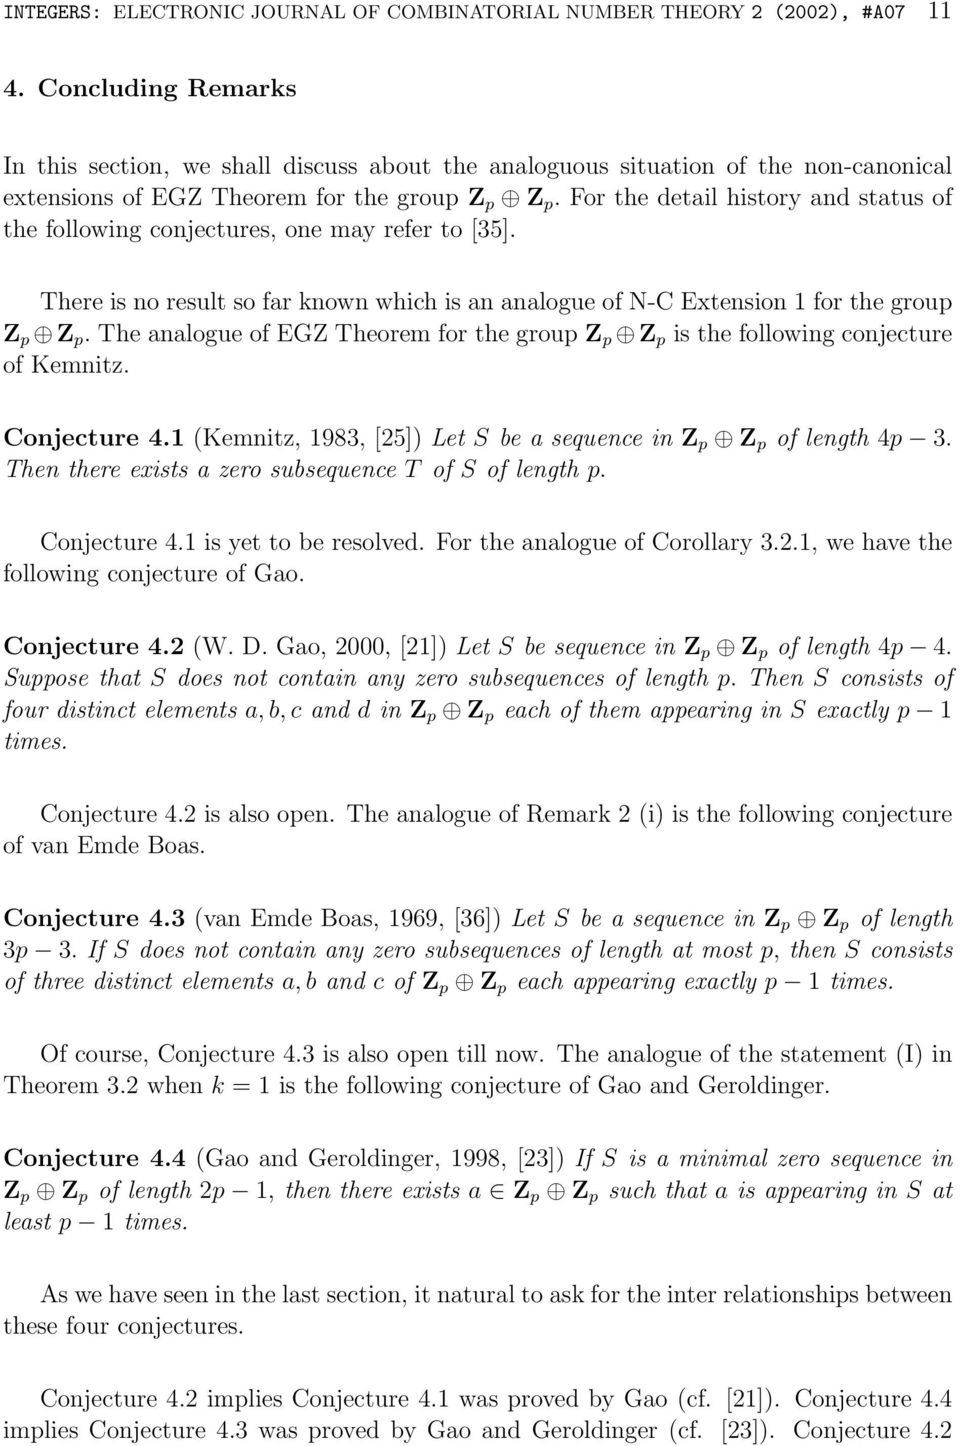 For the detail history and status of the following conjectures, one may refer to [35]. There is no result so far known which is an analogue of N-C Extension 1 for the group Z p Z p.